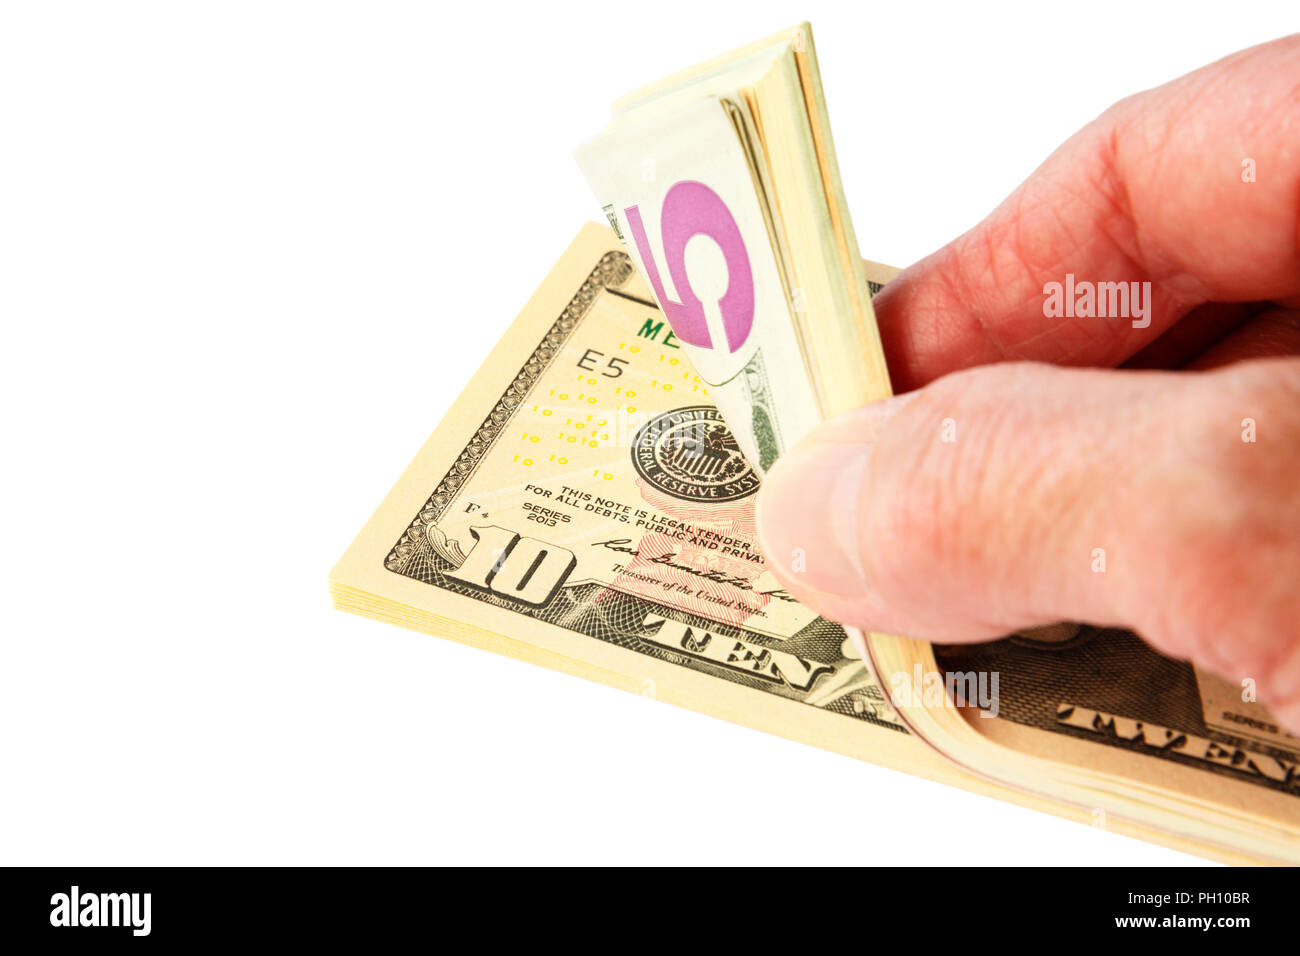 A senior person's hand counting a pile wodge of American currency money in US dollars dollar bills notes cash isolated on a white background. USA - Stock Image